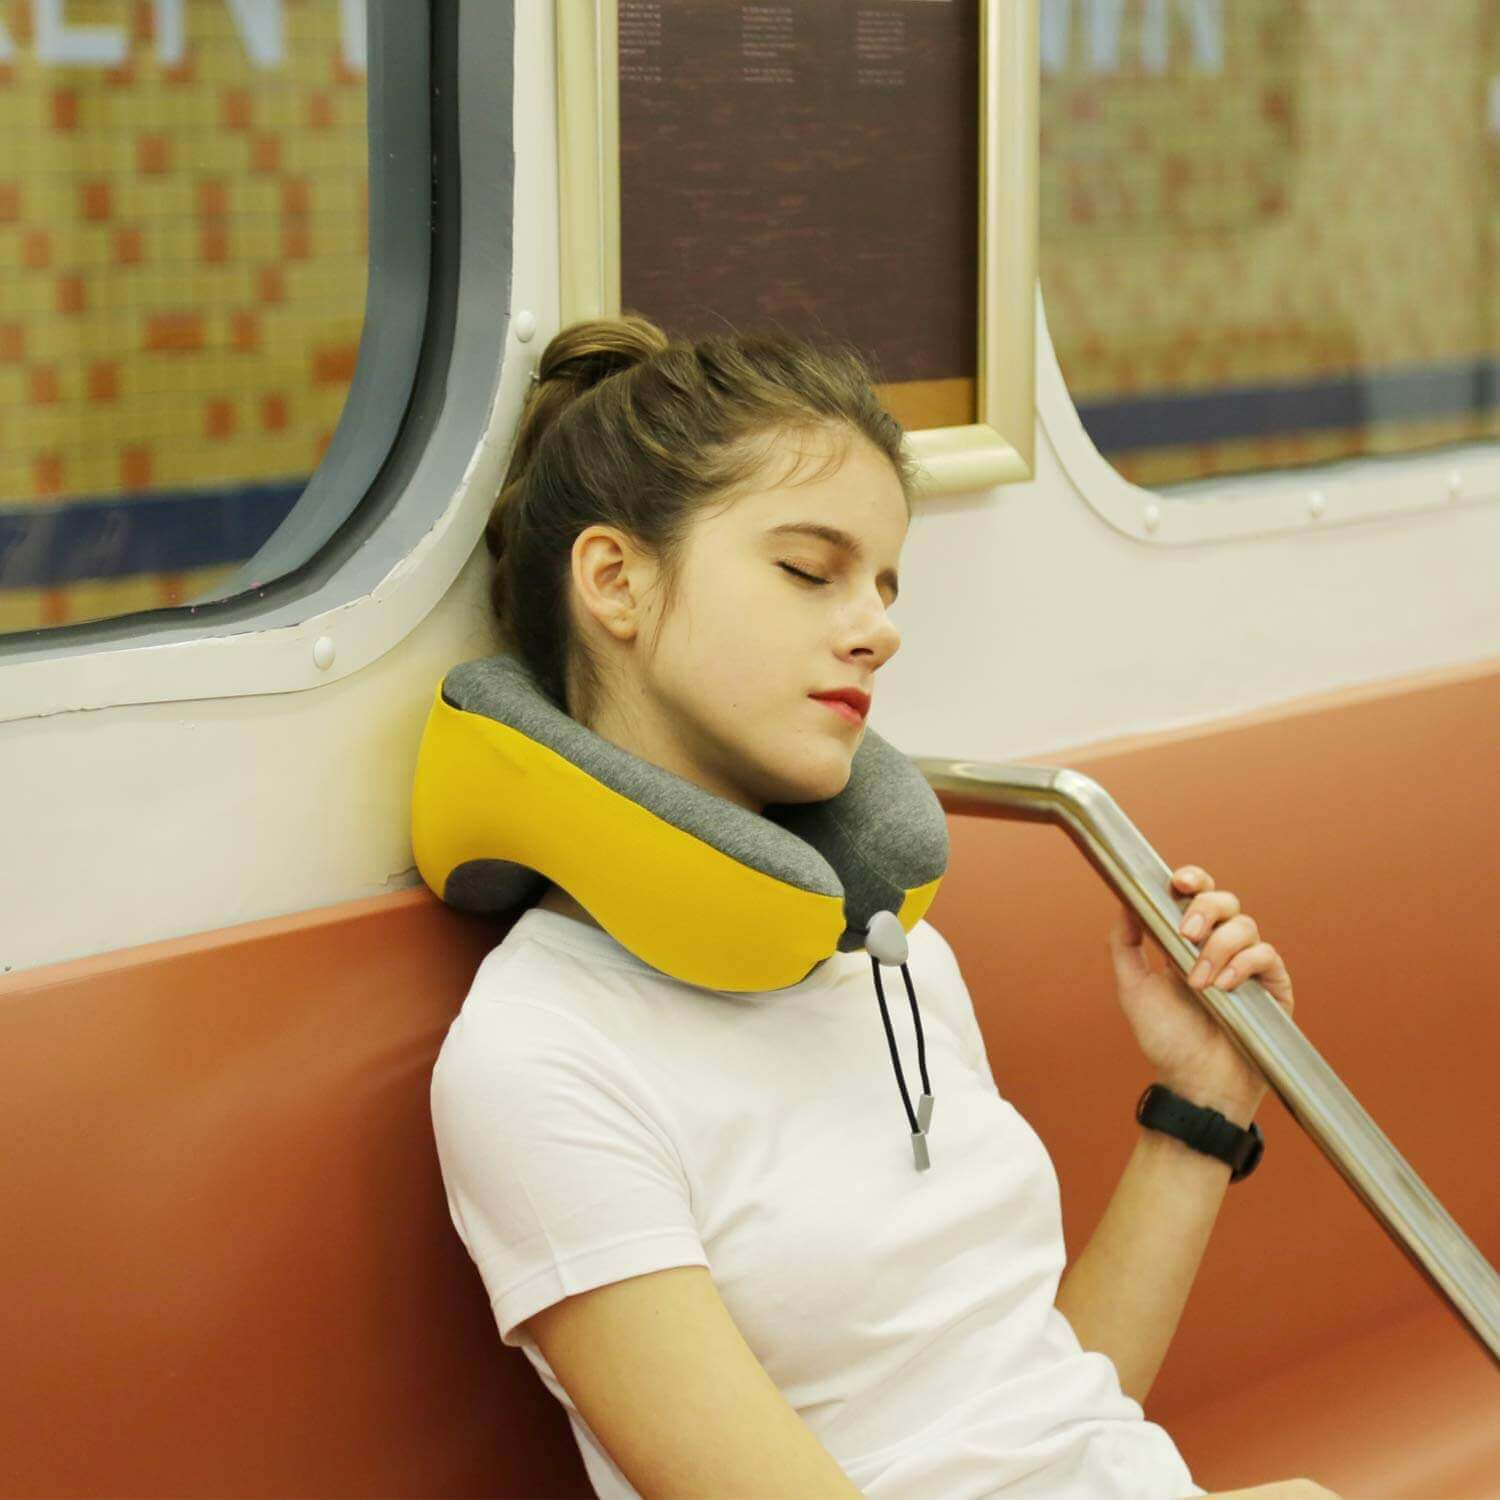 A person sleeping on a train with a neck pillow.